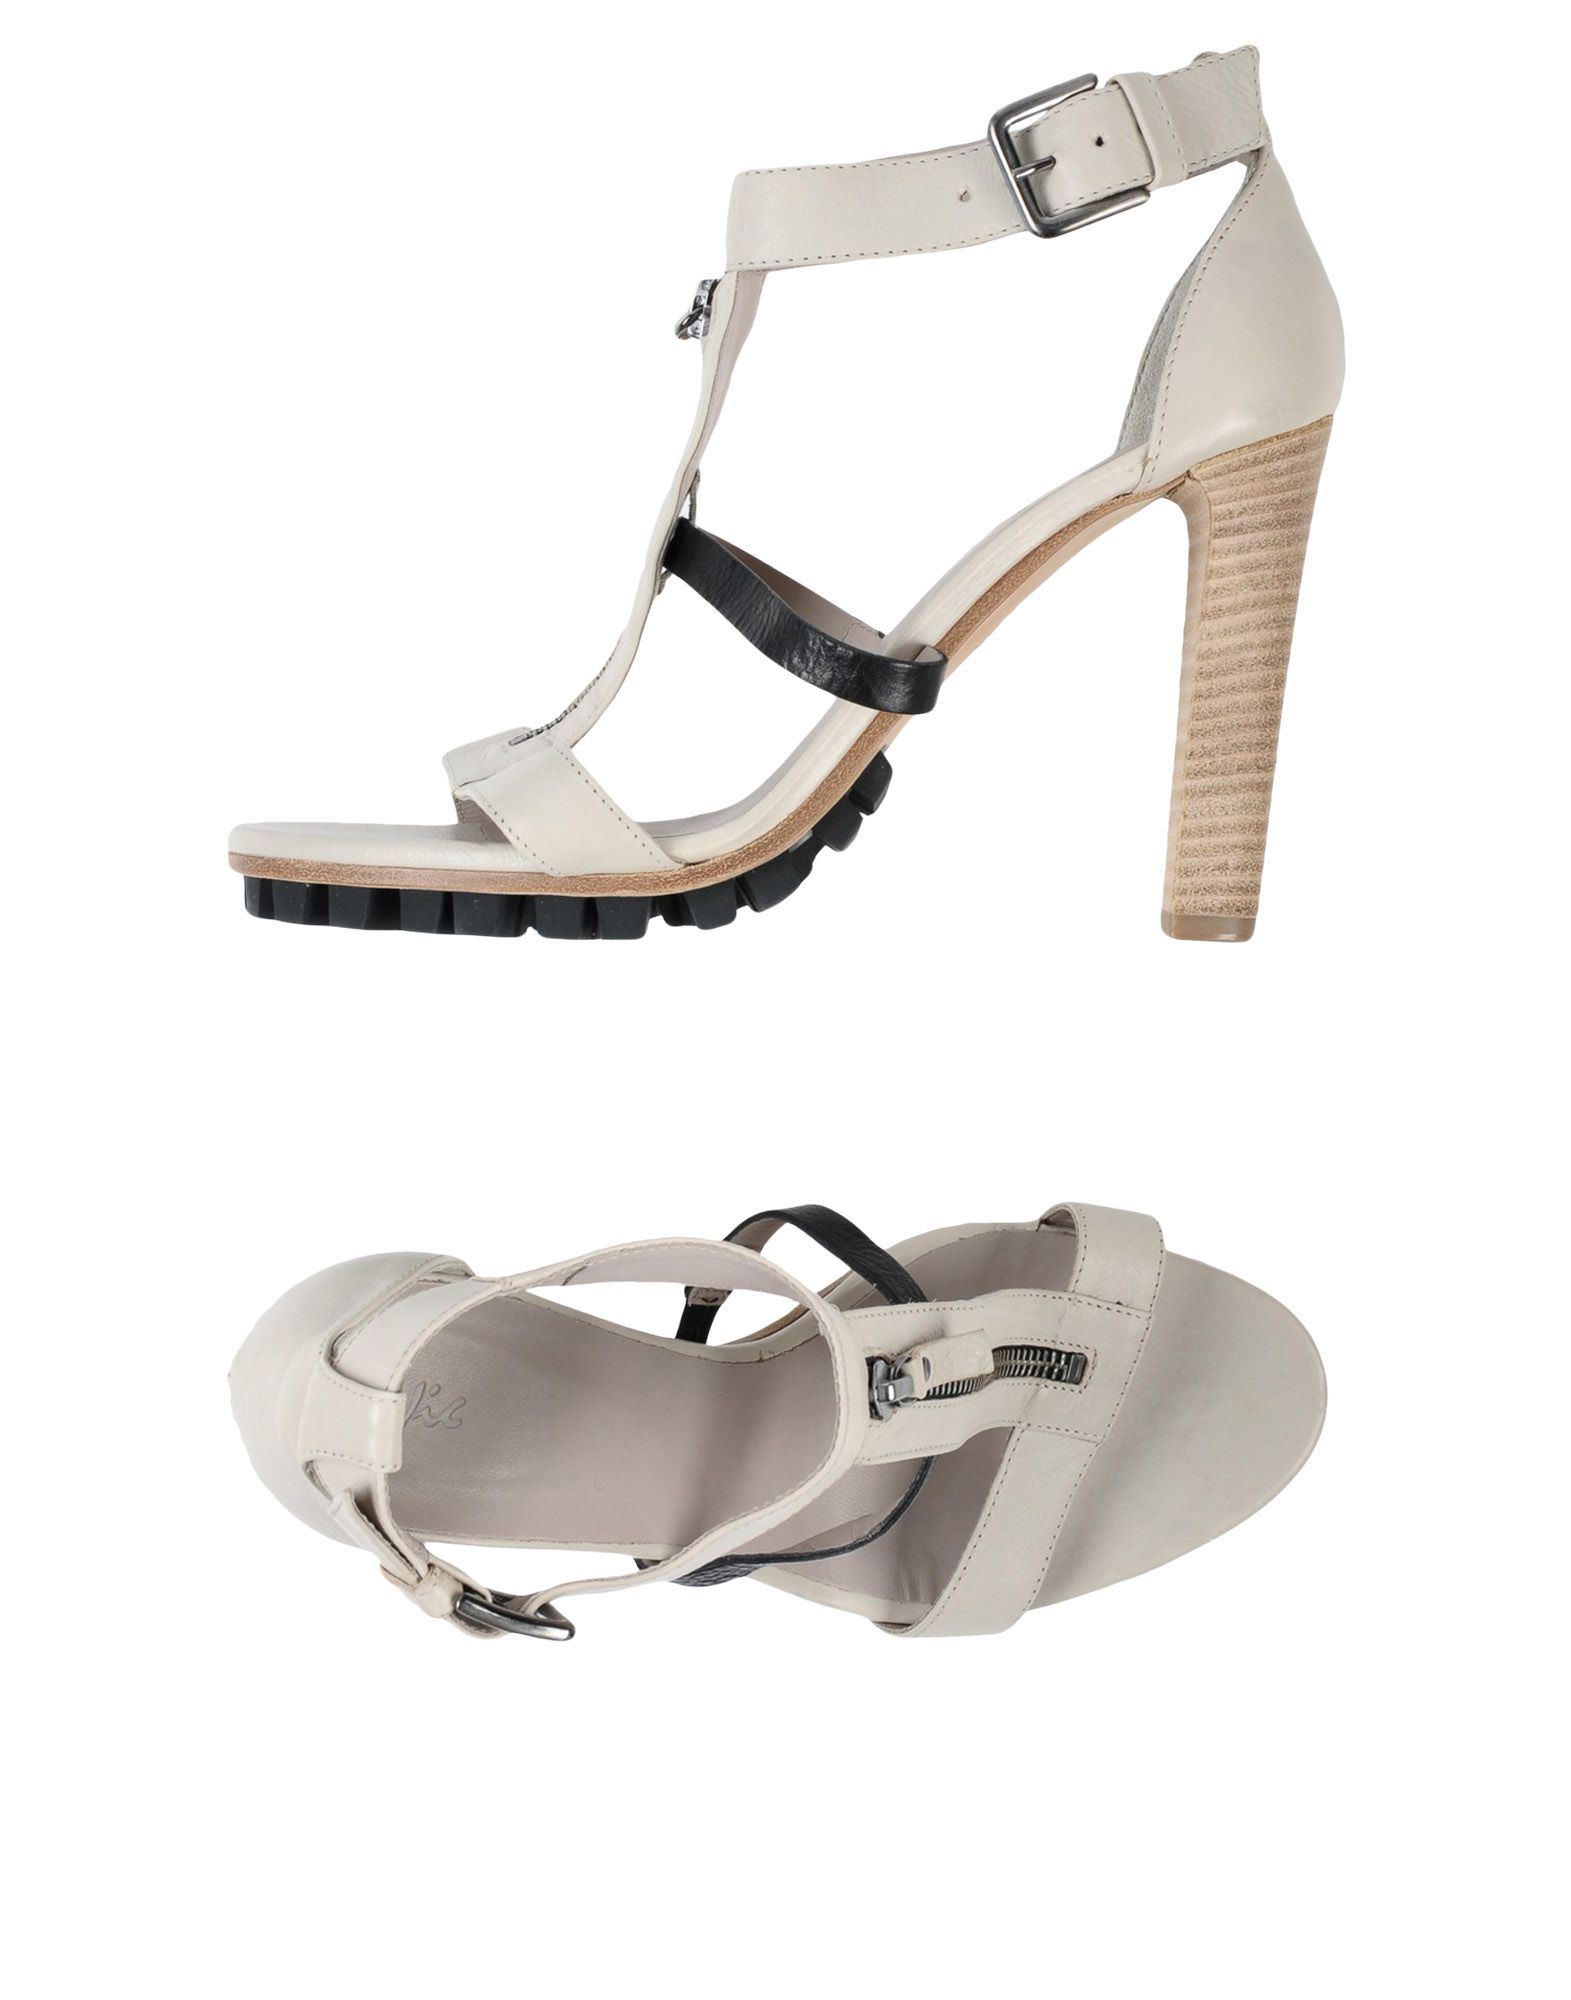 VIC Sandals in Light Grey